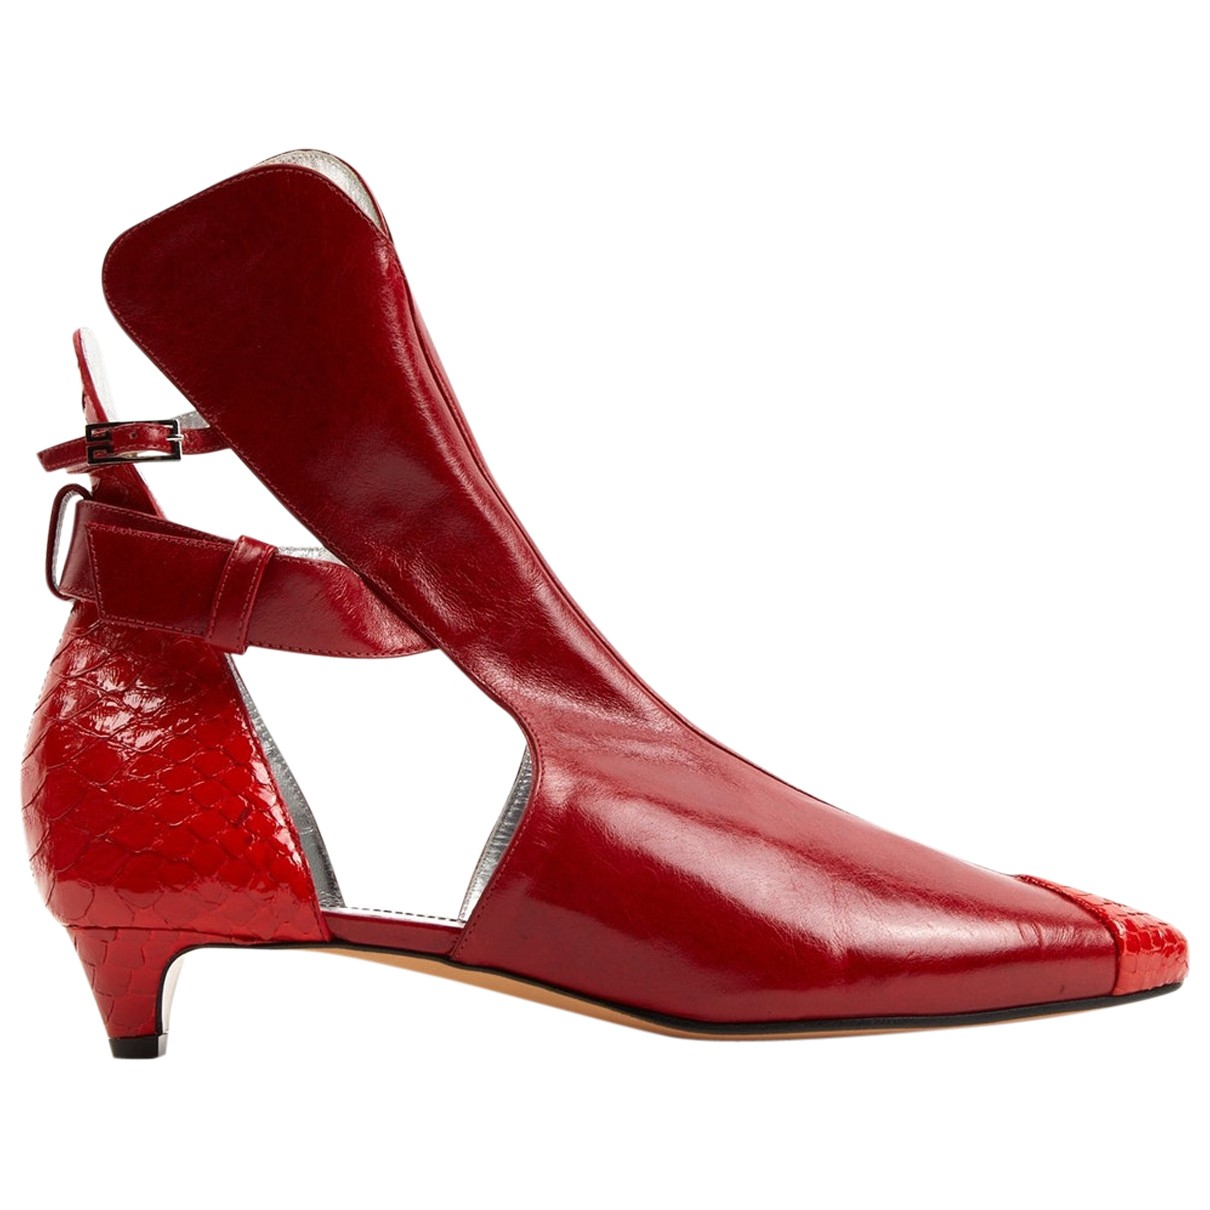 Givenchy \N Stiefeletten in  Rot Leder